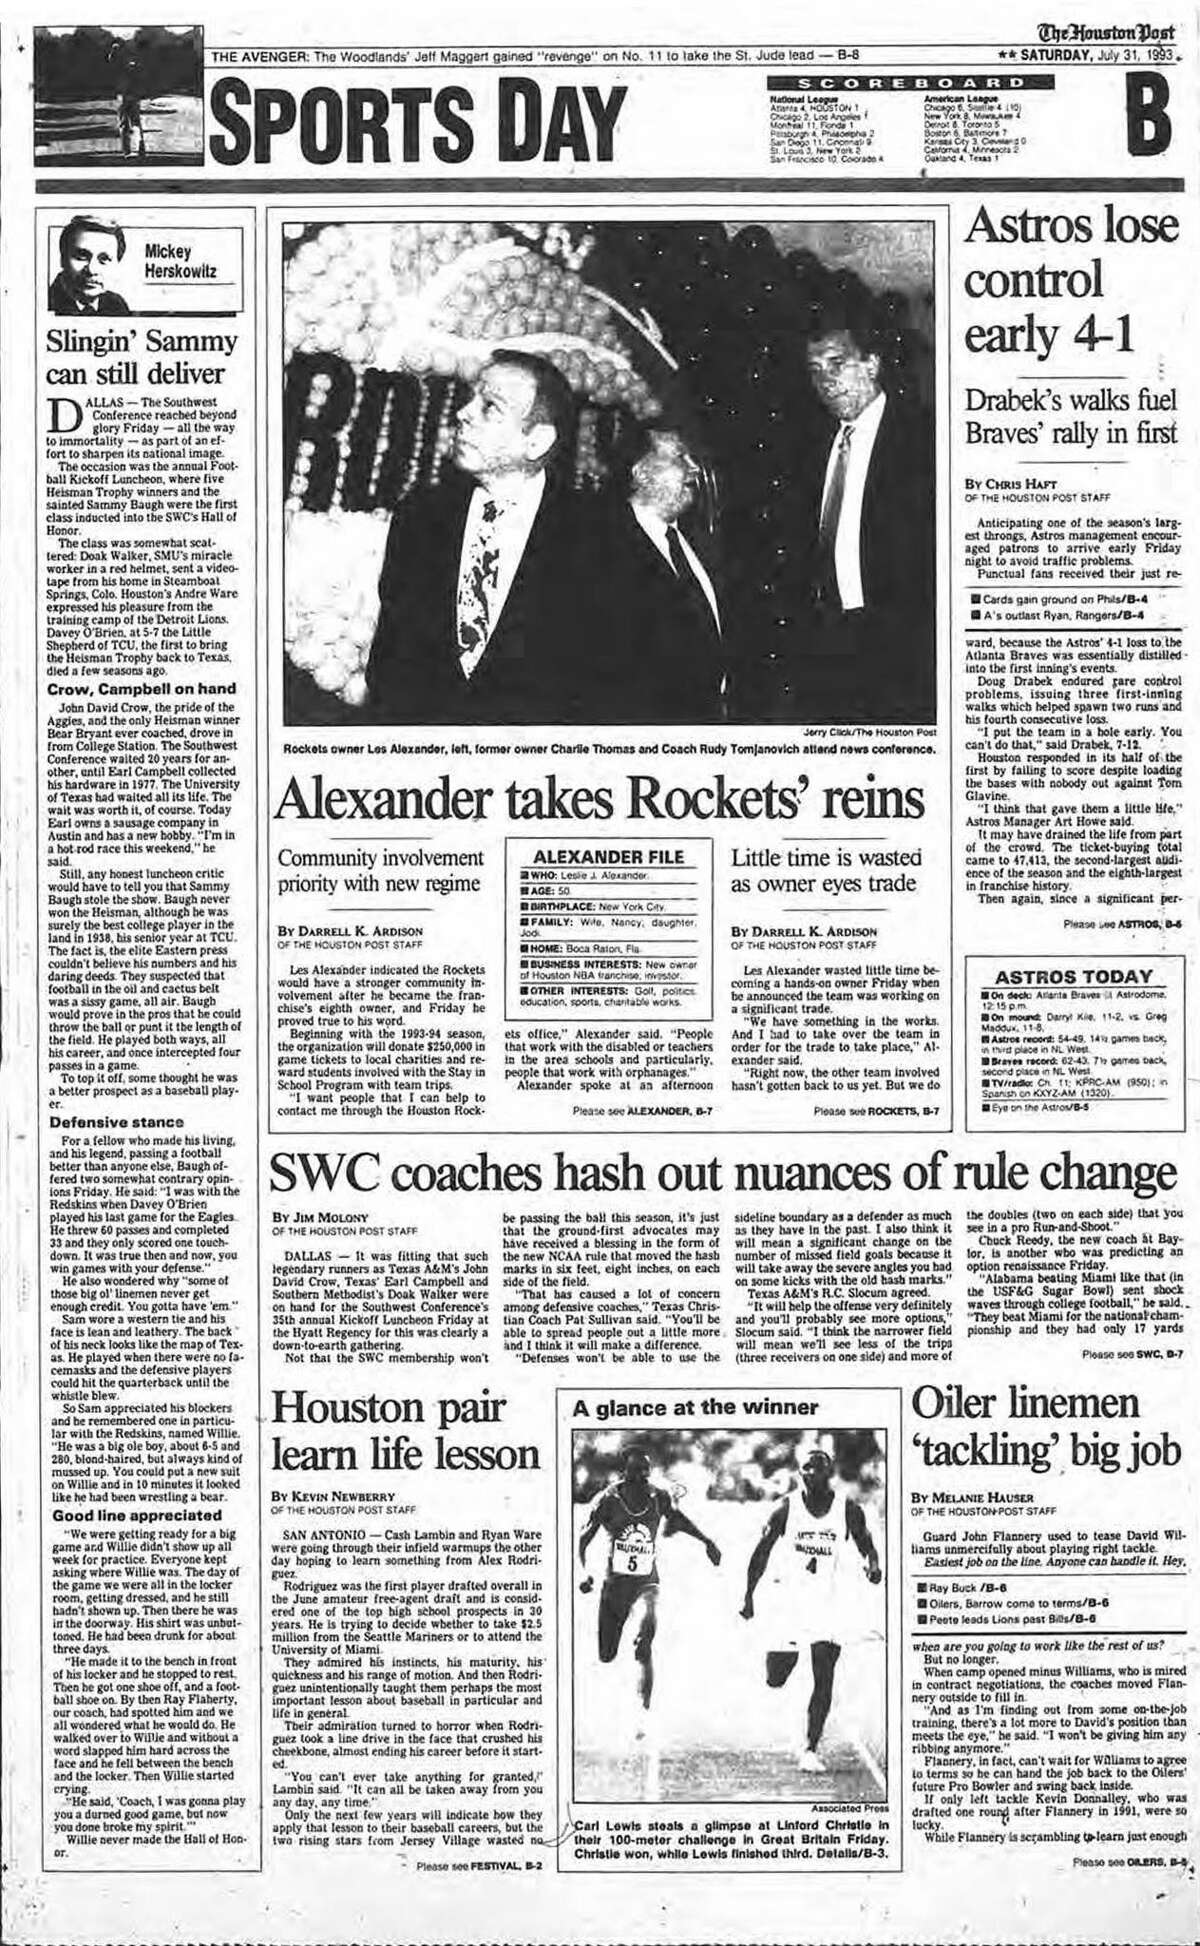 LES ALEXANDER BUYS THE ROCKETS The Houston Post's sports section cover on July 31, 1993 when Les Alexander took over the Rockets after buying the franchise for $85 million.